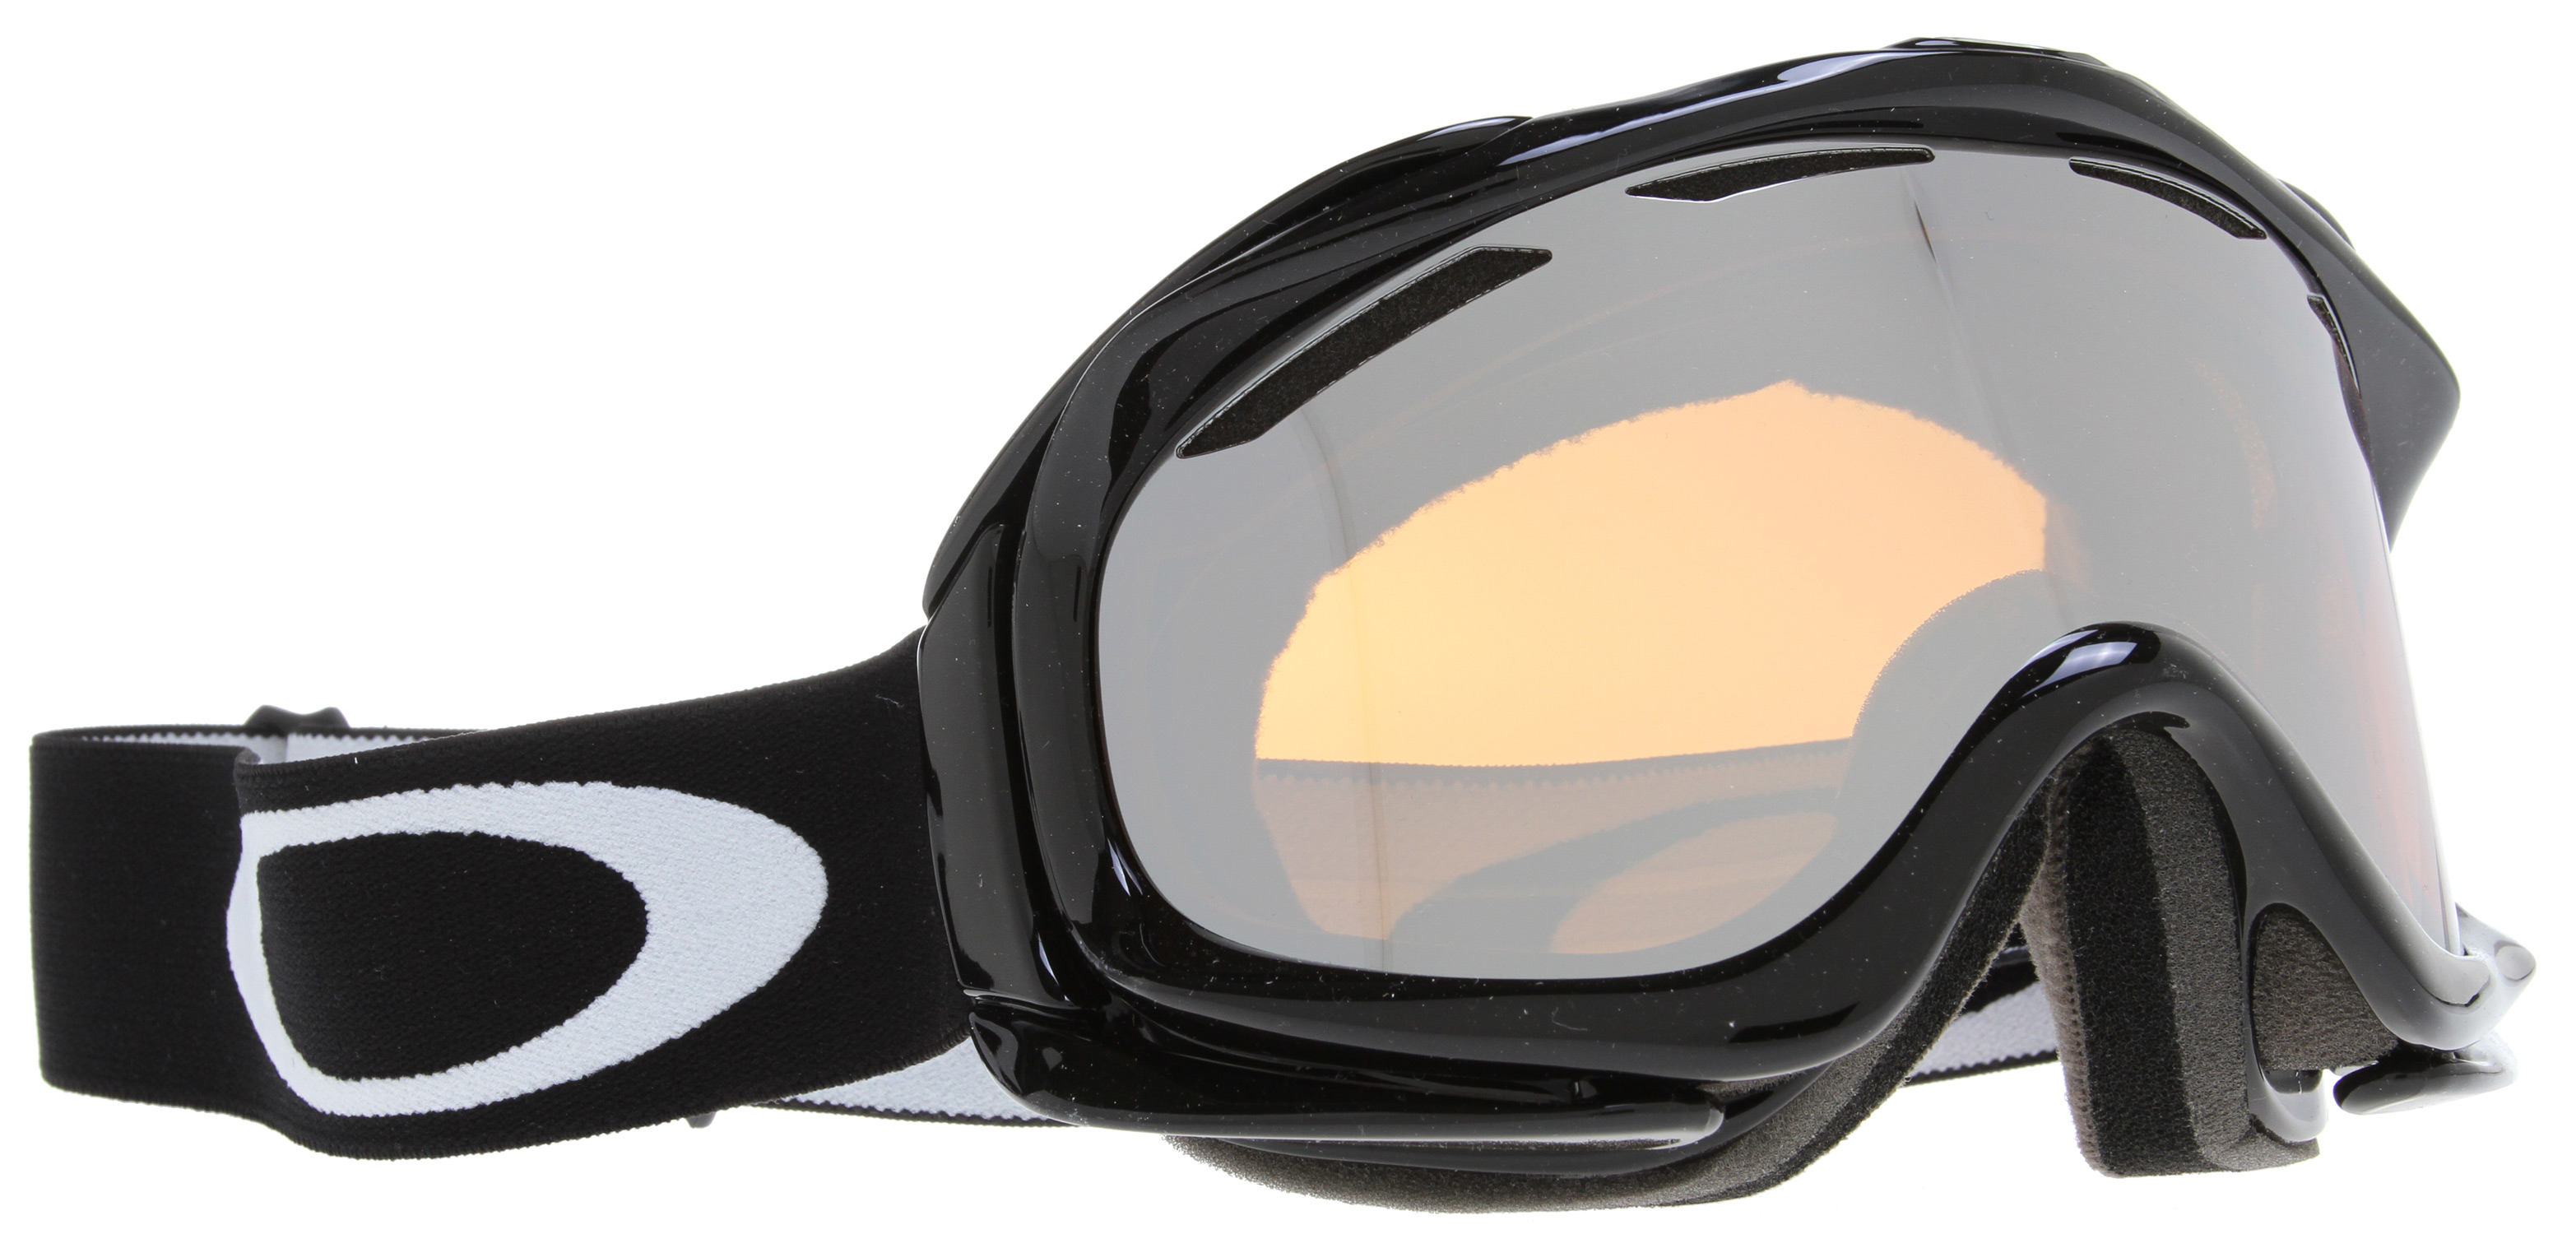 Snowboard Anatomical fit adapts to you for maximum comfort. Key Features of the Oakley Ambush Snowboard Goggles: Articulating O Matter Strap Outriggers Optimize Fit With Or Without A Helmet Flexible O Matter Chassis Conforms To Your Face All Day Comfort Of Moisture Wicking Triple Layer Polar Fleece Foam Dual Vented Lenses With F2 Anti Fog Coating Small To Medium fit - $74.95